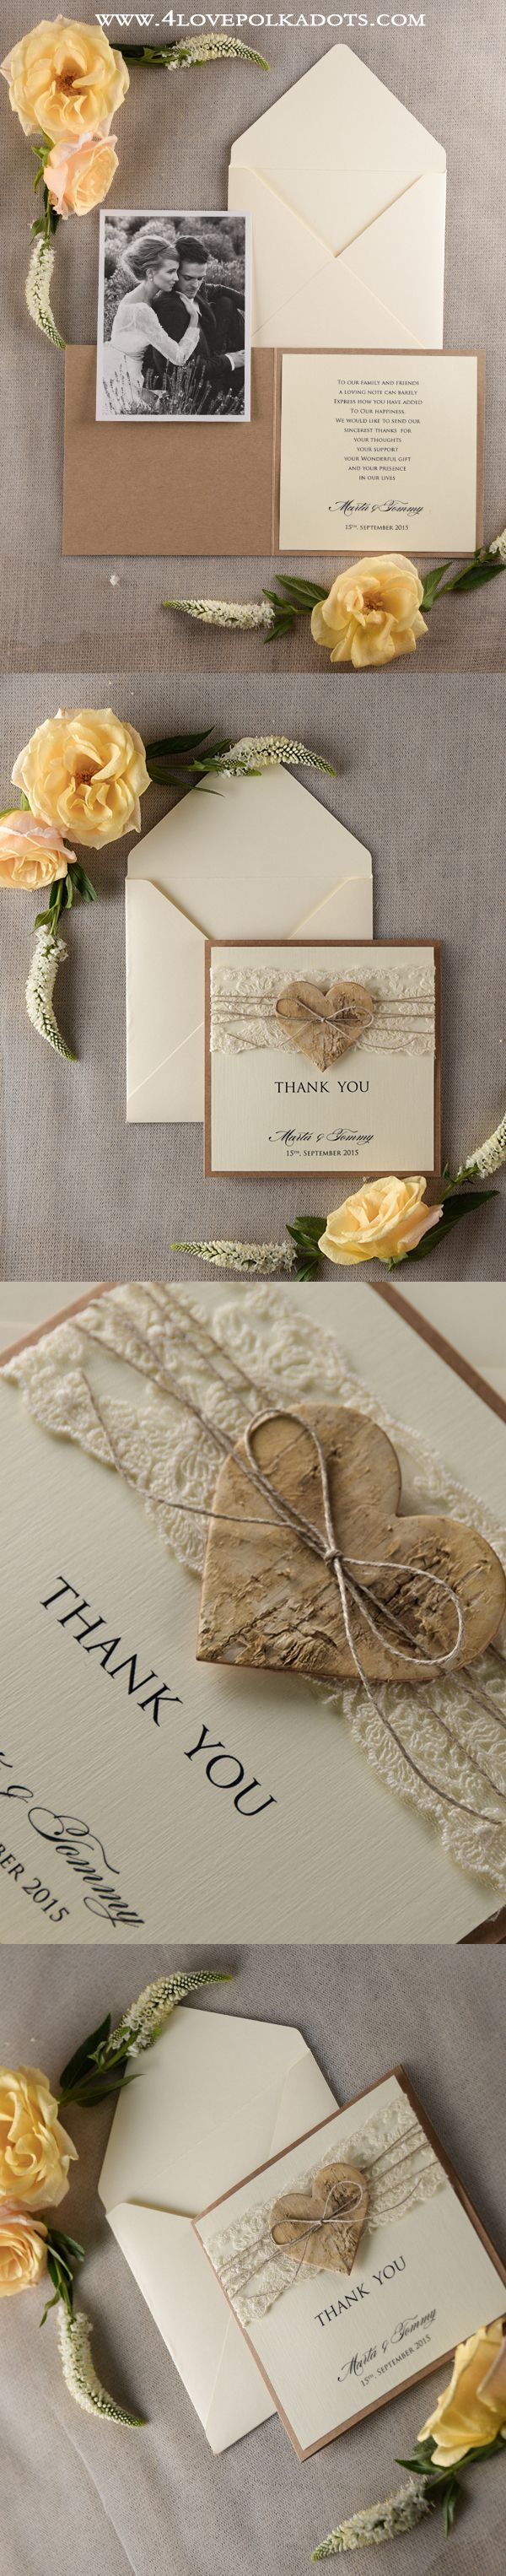 Wedding Thank You Cards - with lace and birch bark heart #weddingideas #romanticwedding #rustic #country